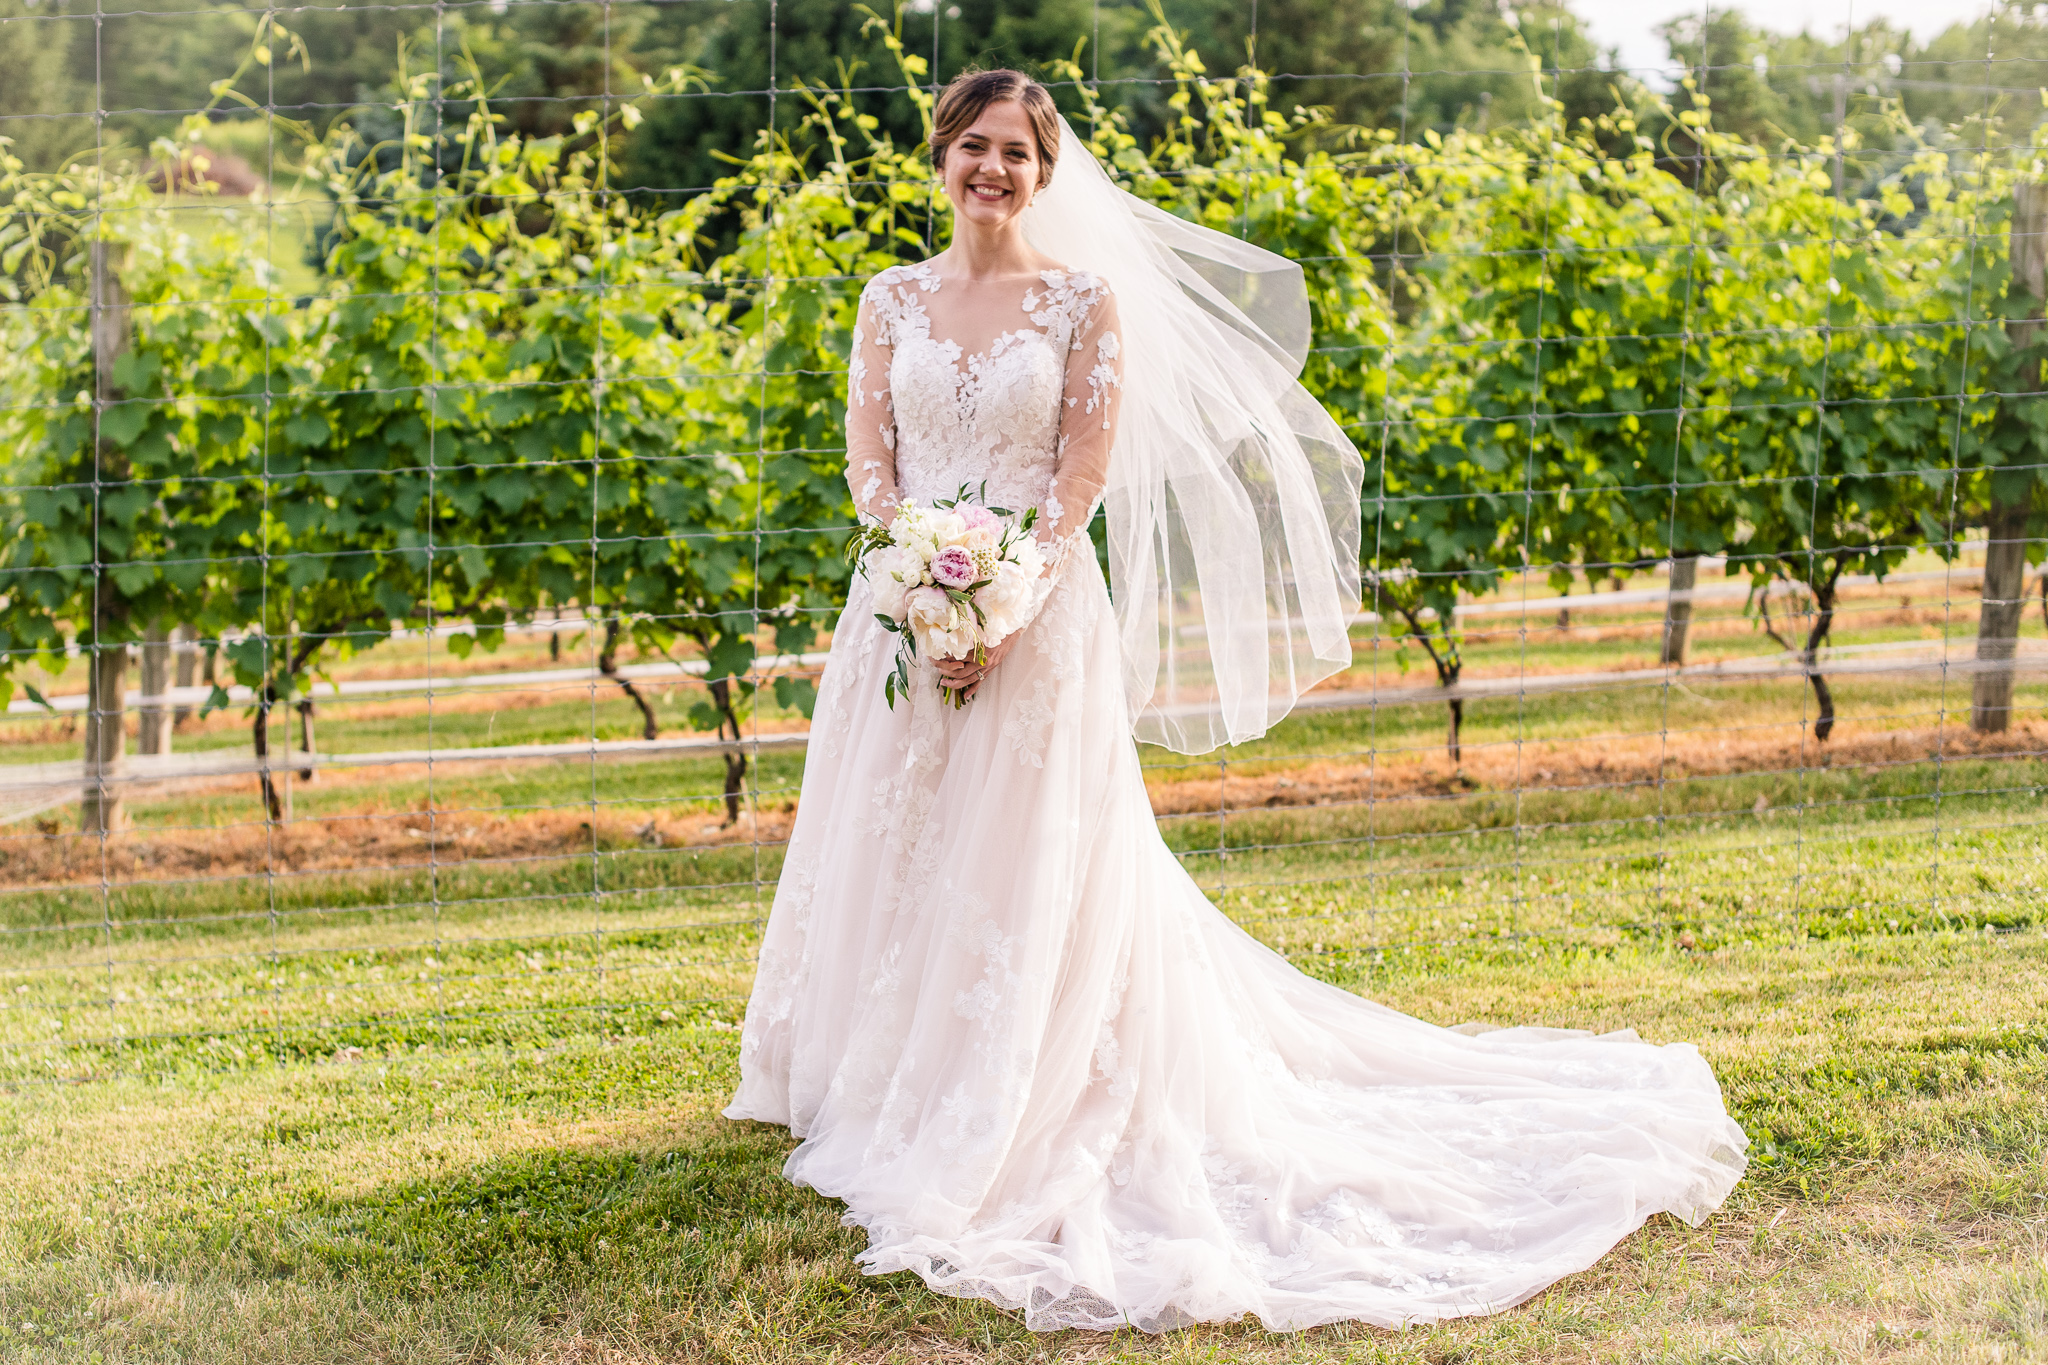 A classic bride in a modest lace wedding dress poses for a portrait in the vineyards at The Barns at Hamilton Station Vineyard in Leesburg, Northern Virginia